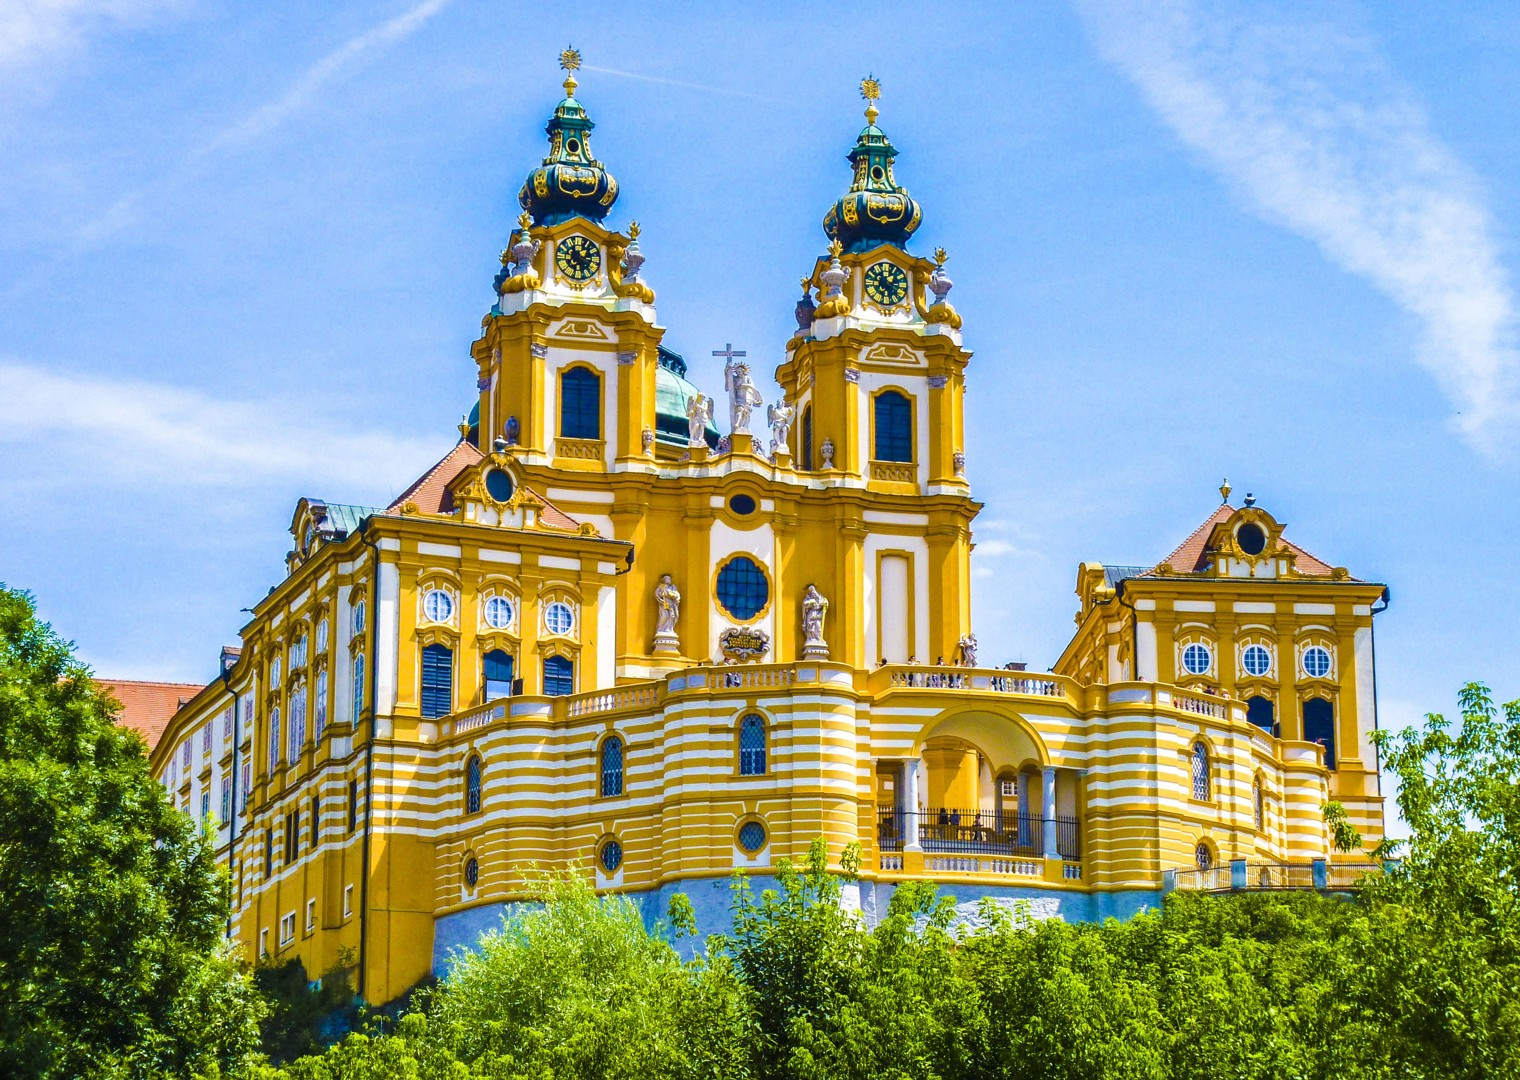 melk-abbey-austria-wachau-valley-8-day-sightseeing-cycling-holdiay.jpg - Germany and Austria - The Danube Cyclepath (8 Days) - Self-Guided Leisure Cycling Holiday - Leisure Cycling